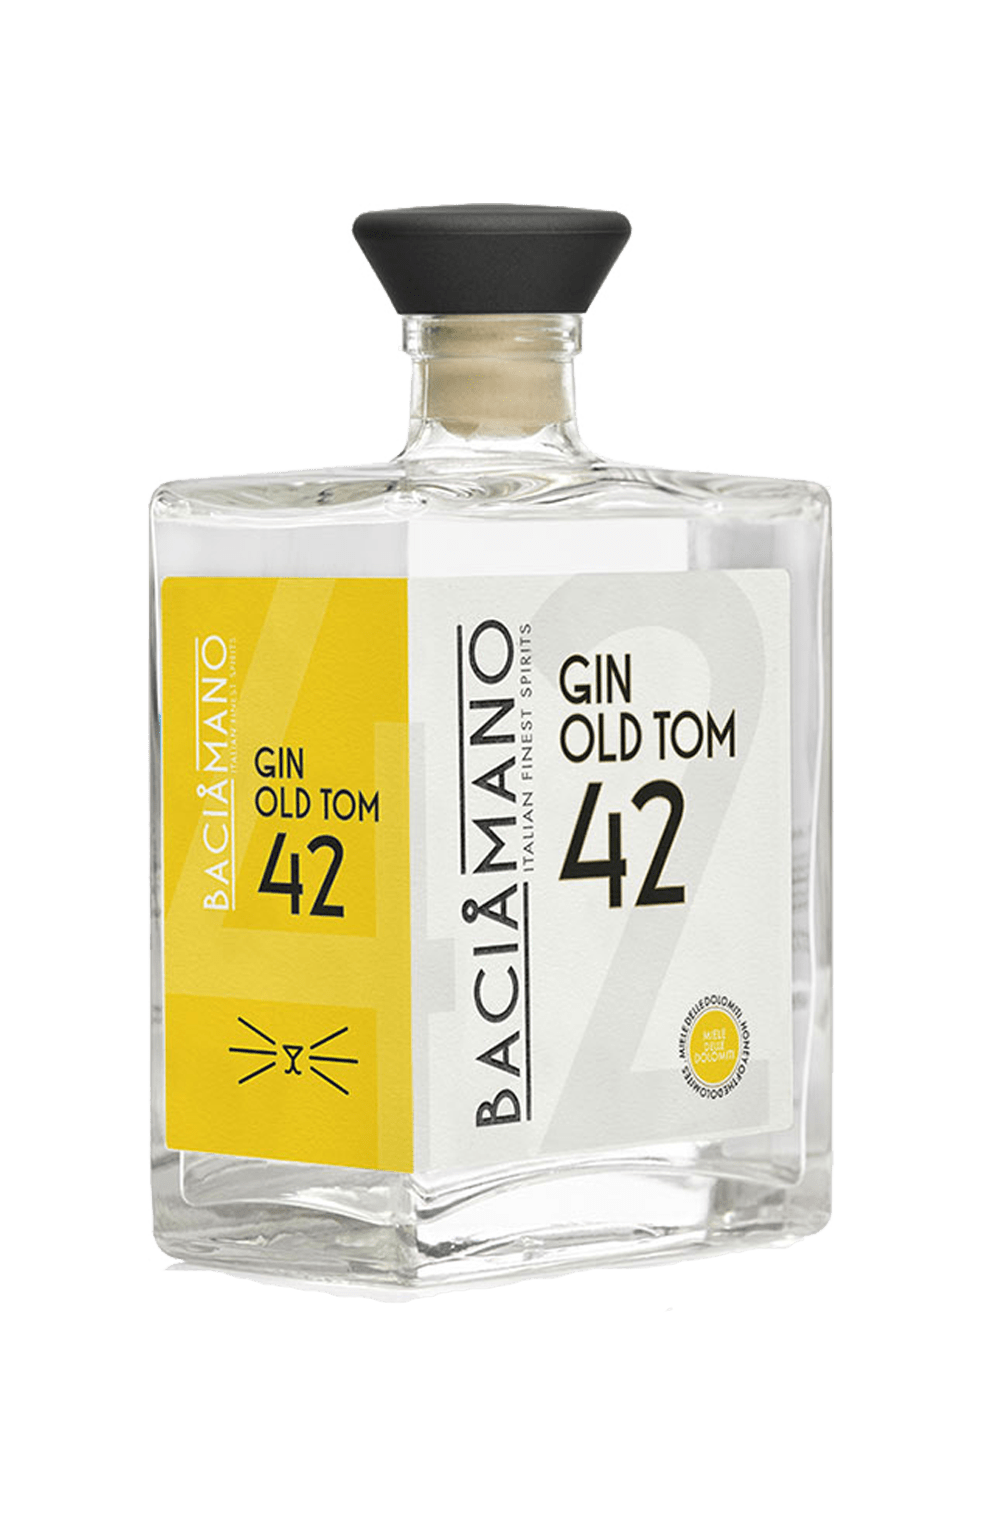 Baciamano Gin 42 Old Tom